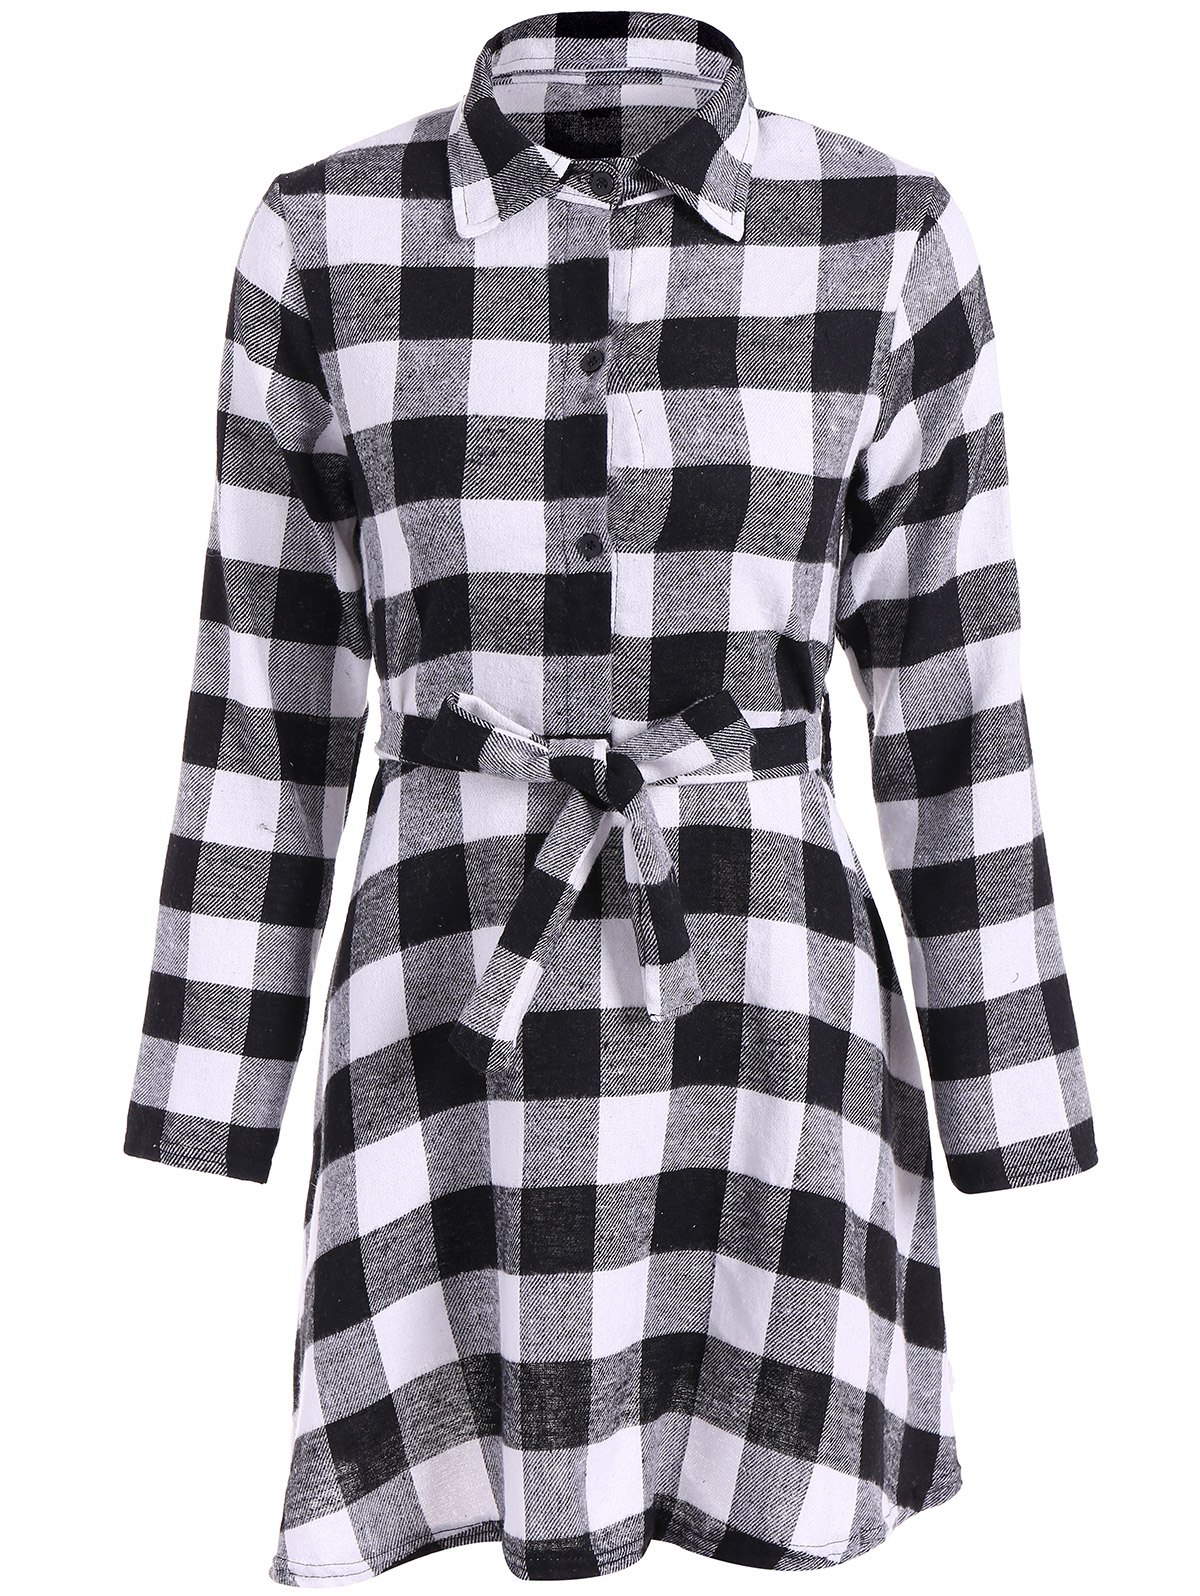 Checked Belted Shirt DressWomen<br><br><br>Size: S<br>Color: WHITE AND BLACK